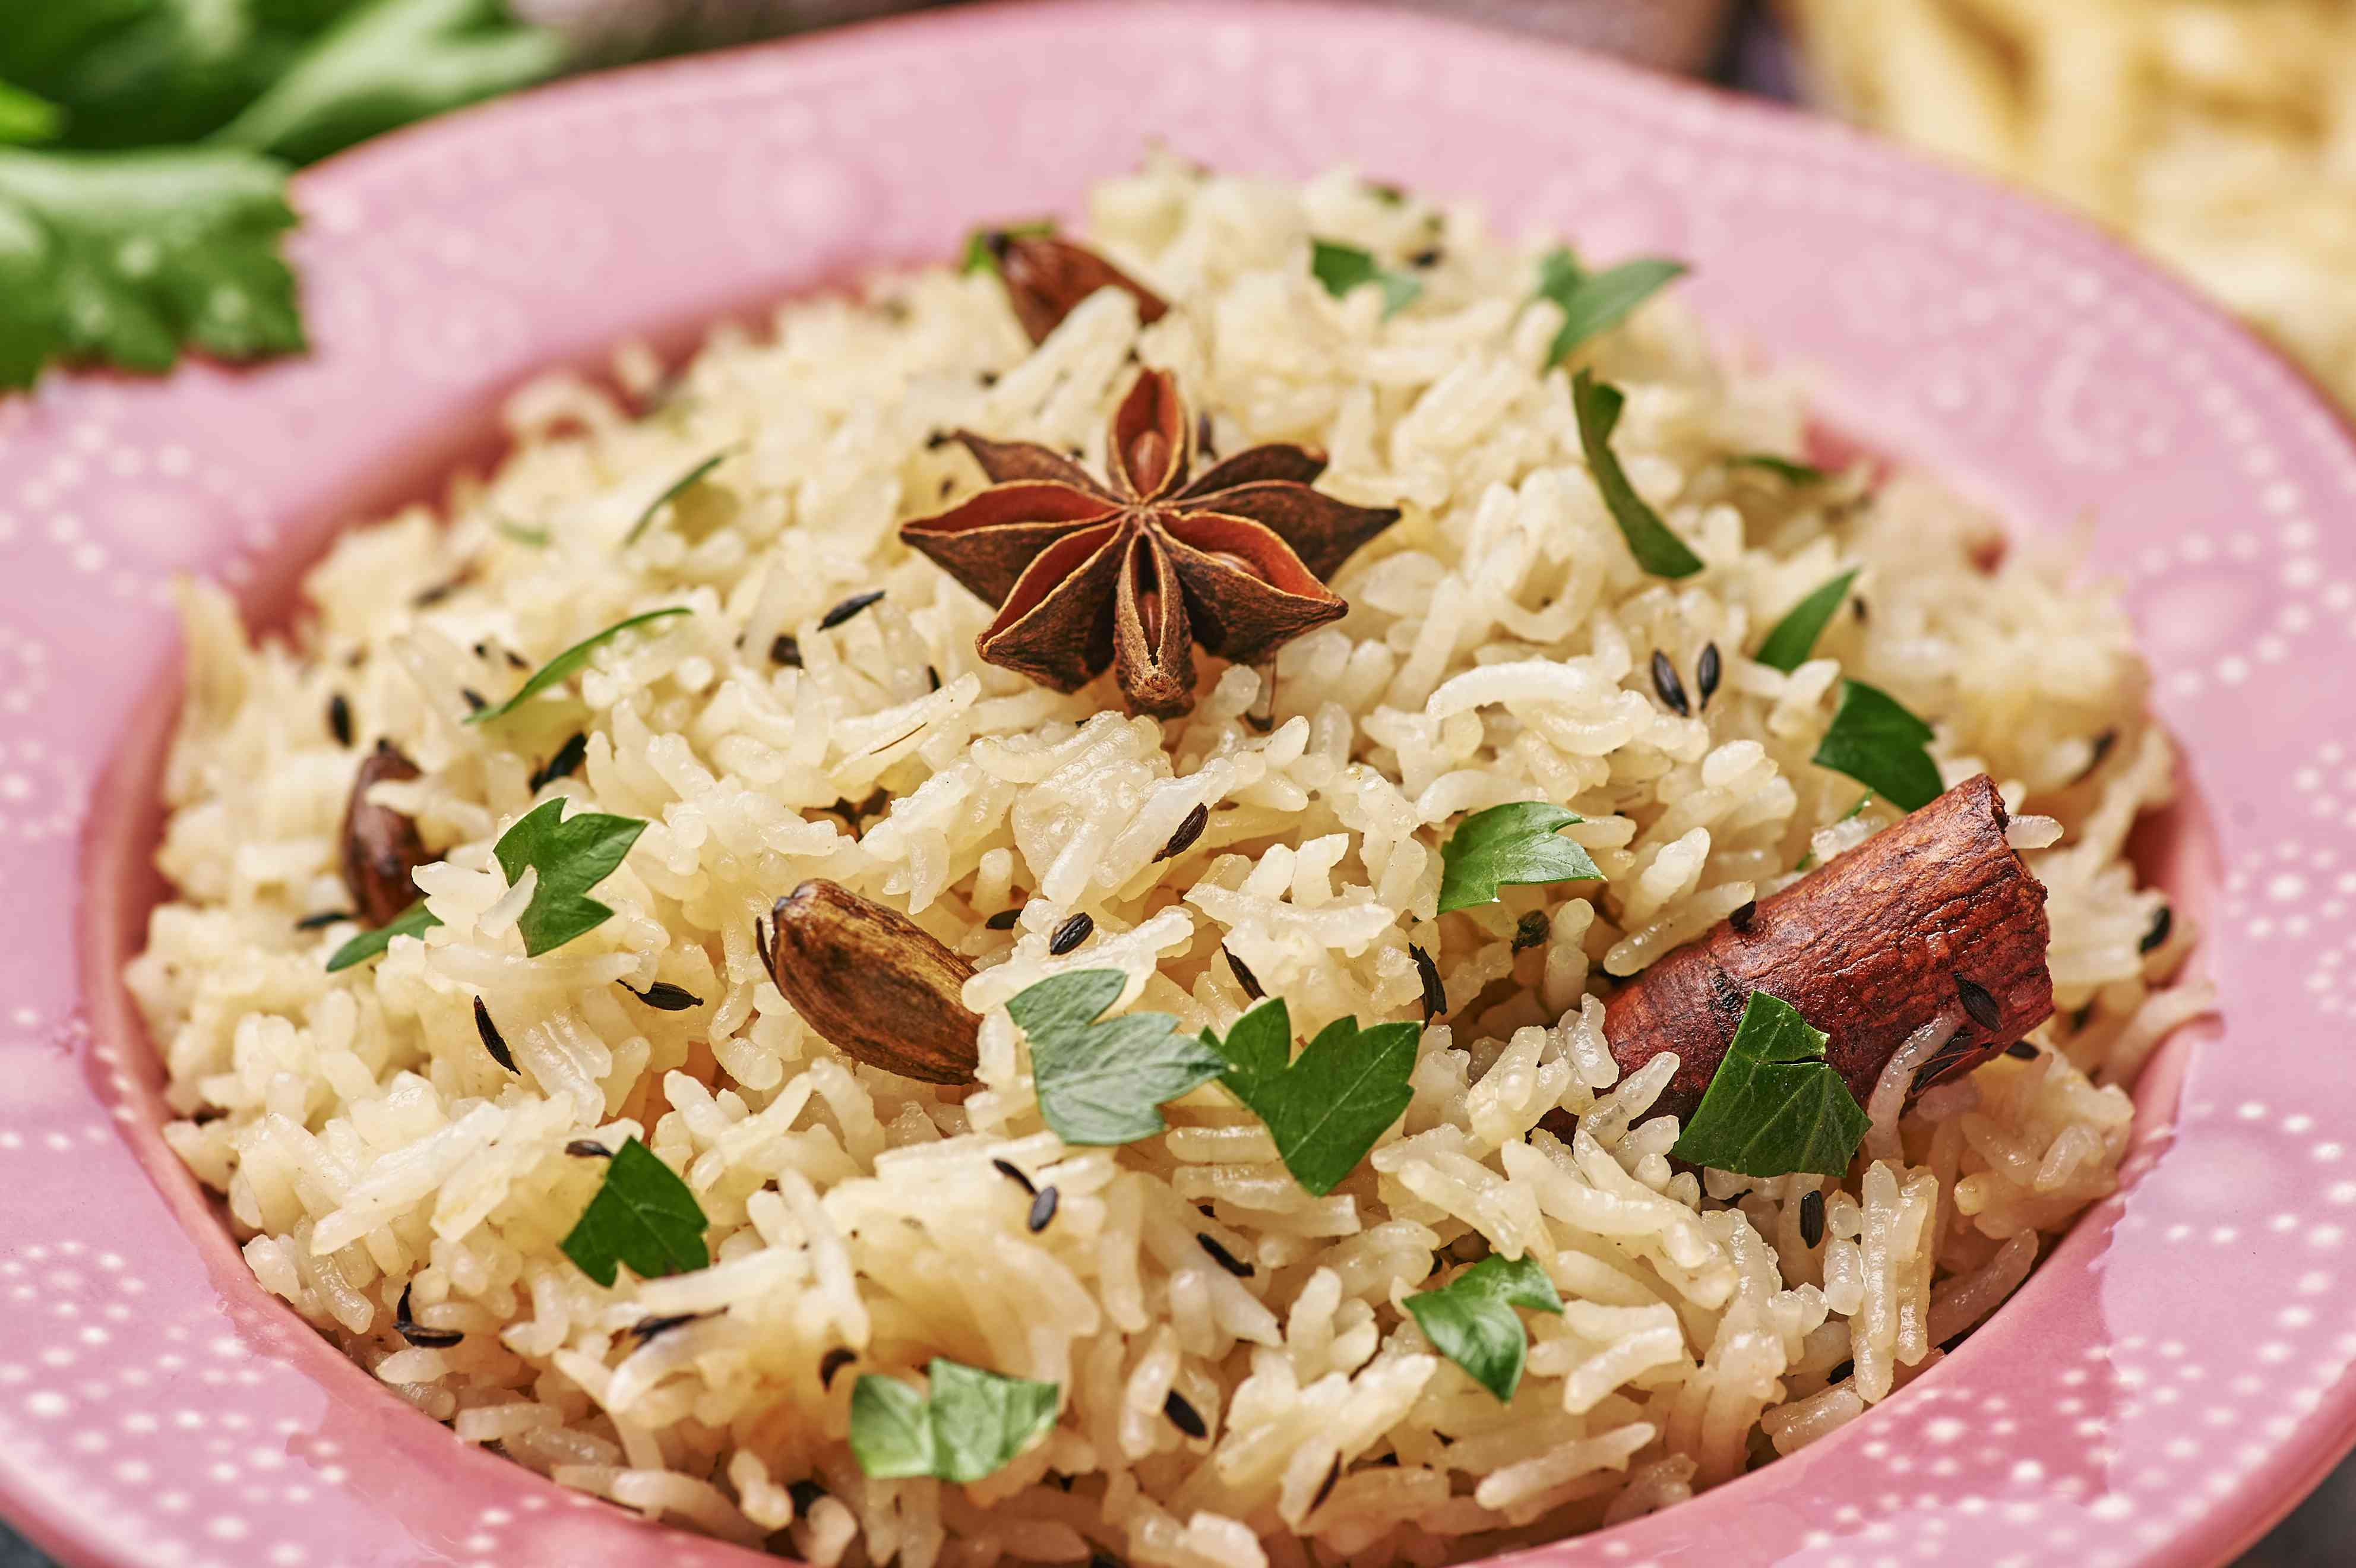 Jeera Rice in pink plate at dark bacgkround.